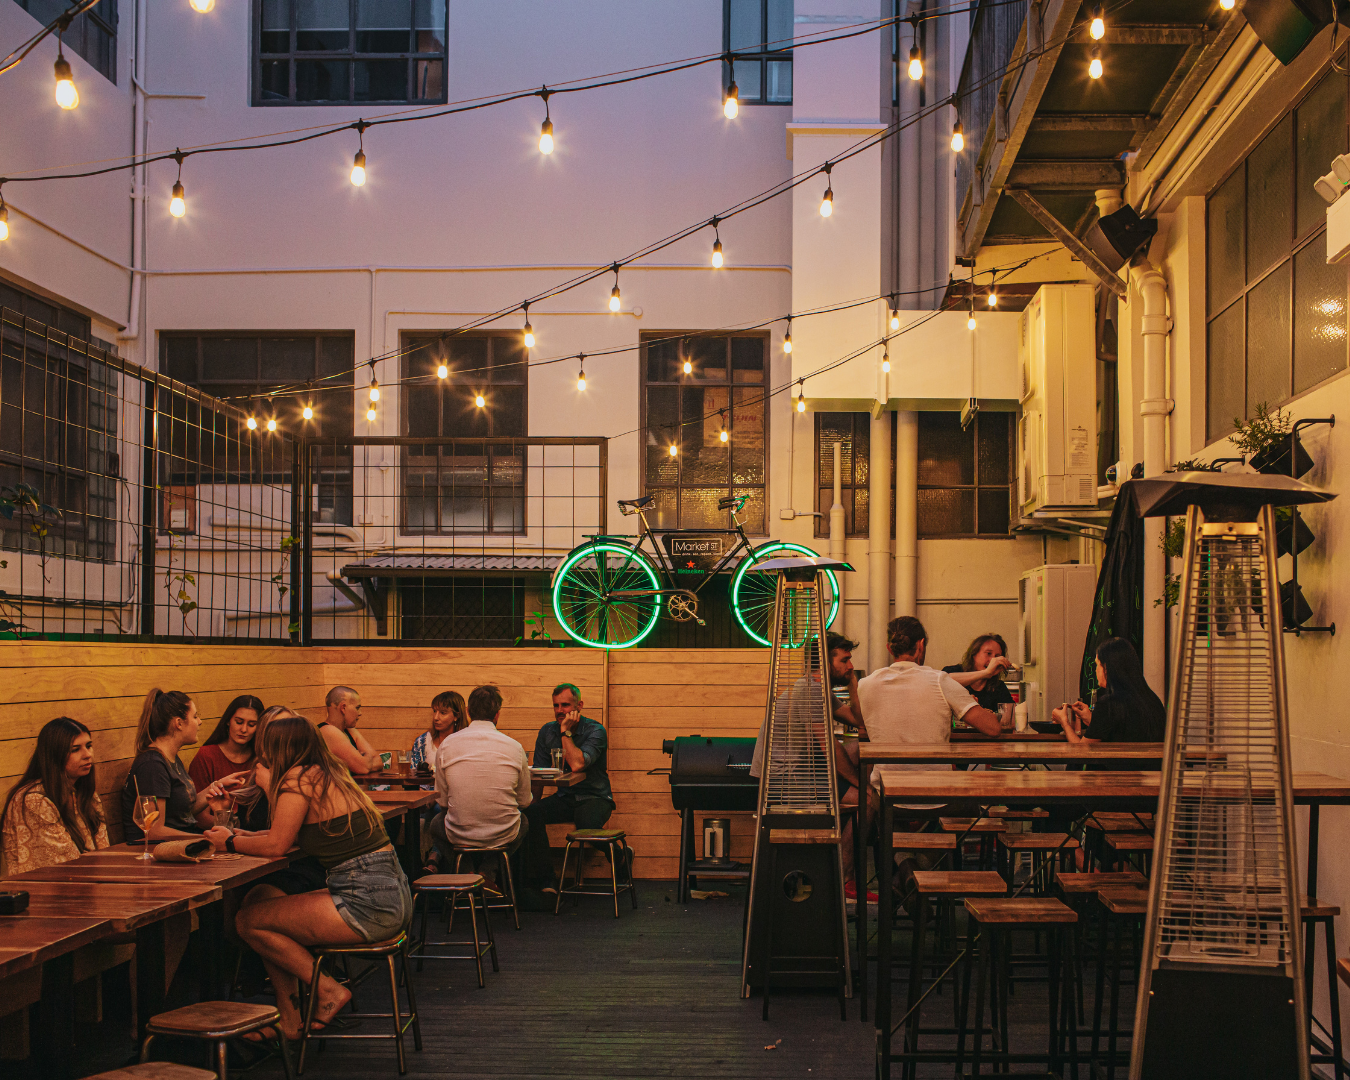 Customers enjoying drinks at the outdoor area of the bar. A cycle with green neon lights hangs on the fence.